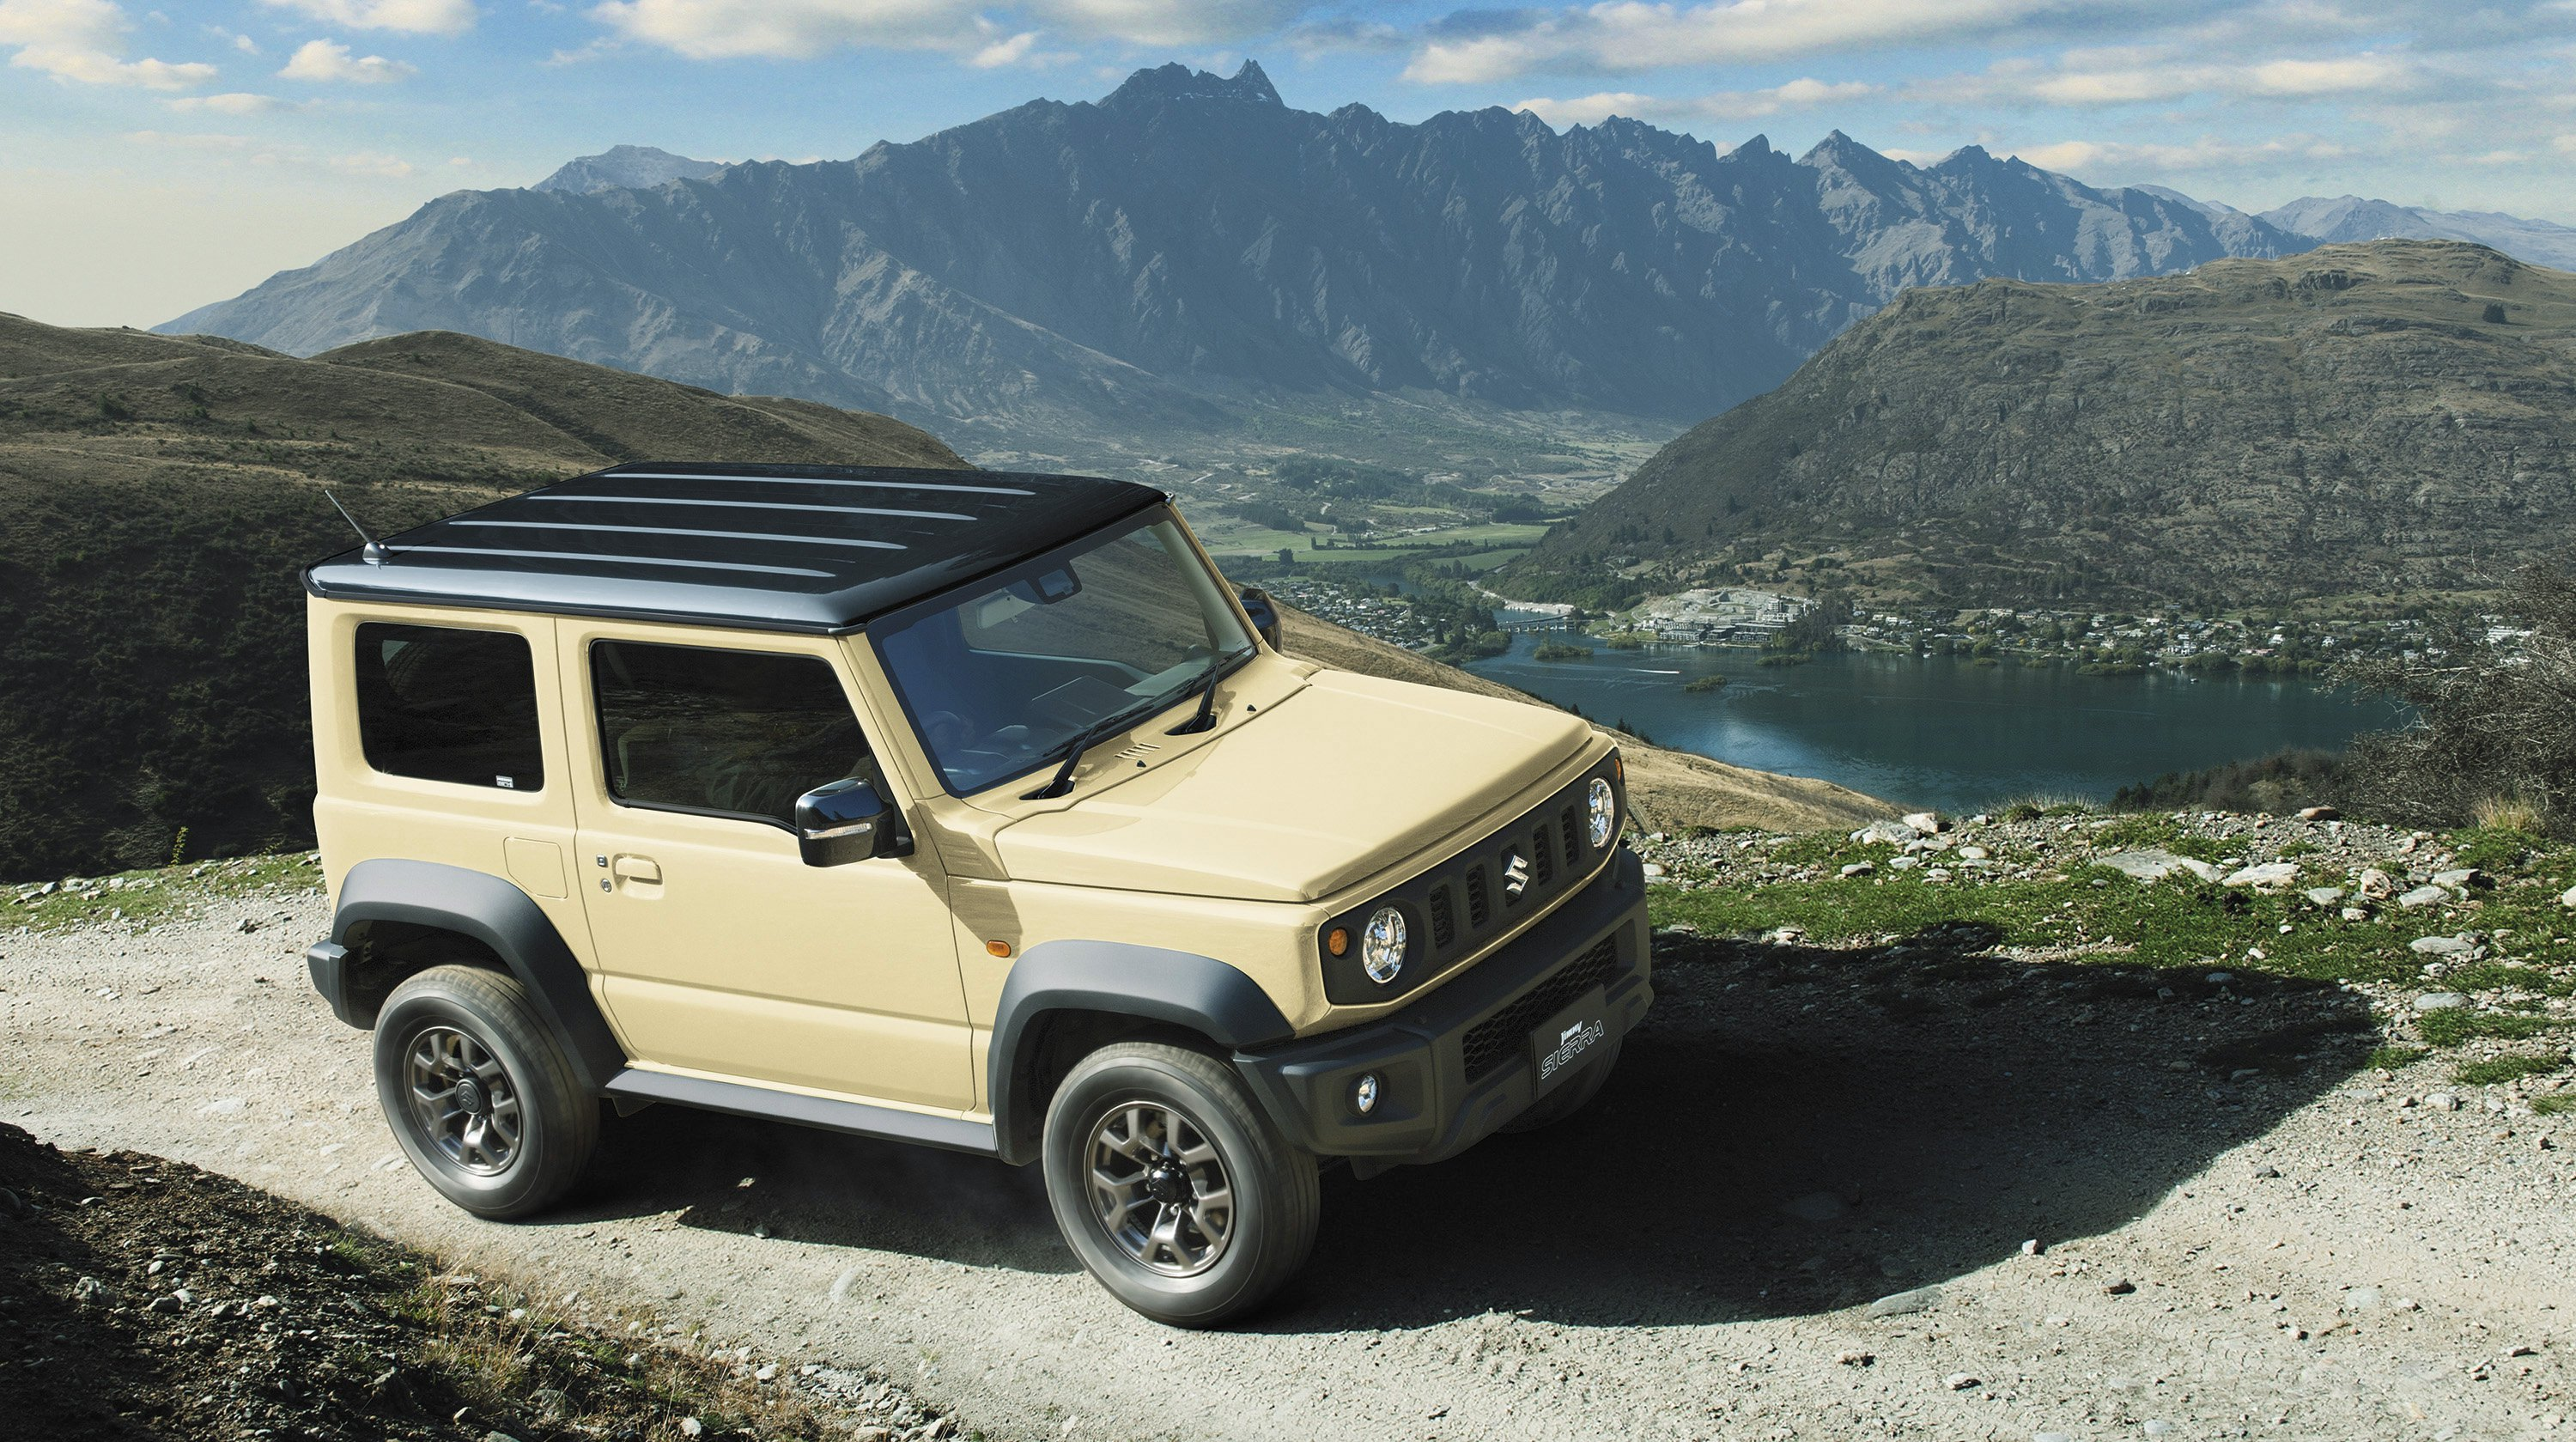 52 The Best 2020 Suzuki Jimny Specs